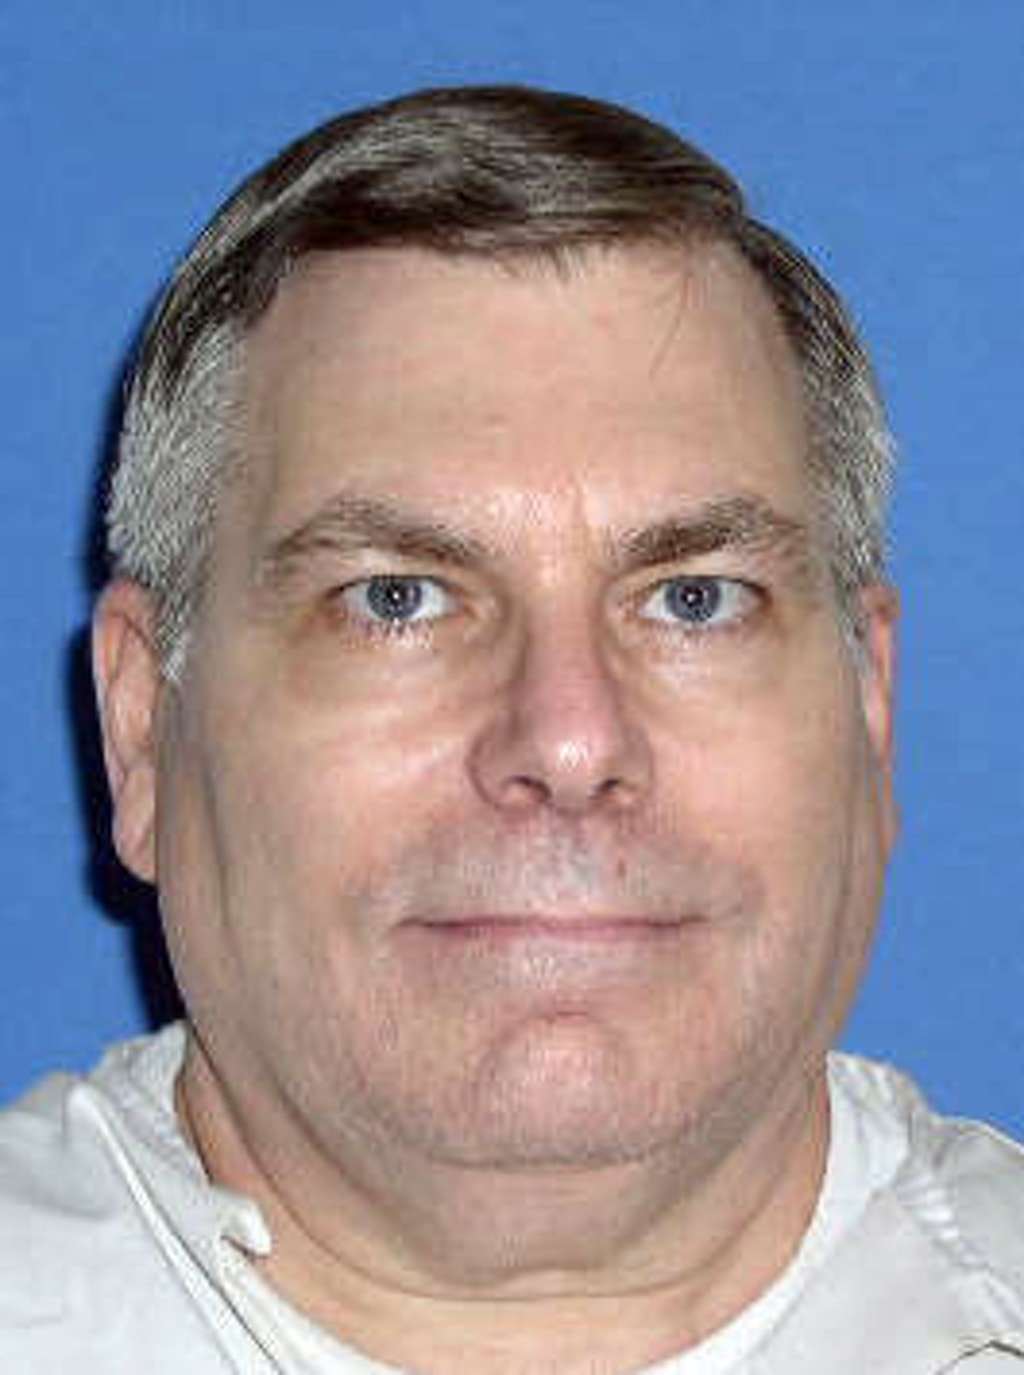 Texas to Execute Lester Bower After 30 Years on Death Row, Despite Errors and Doubts as to Guilt